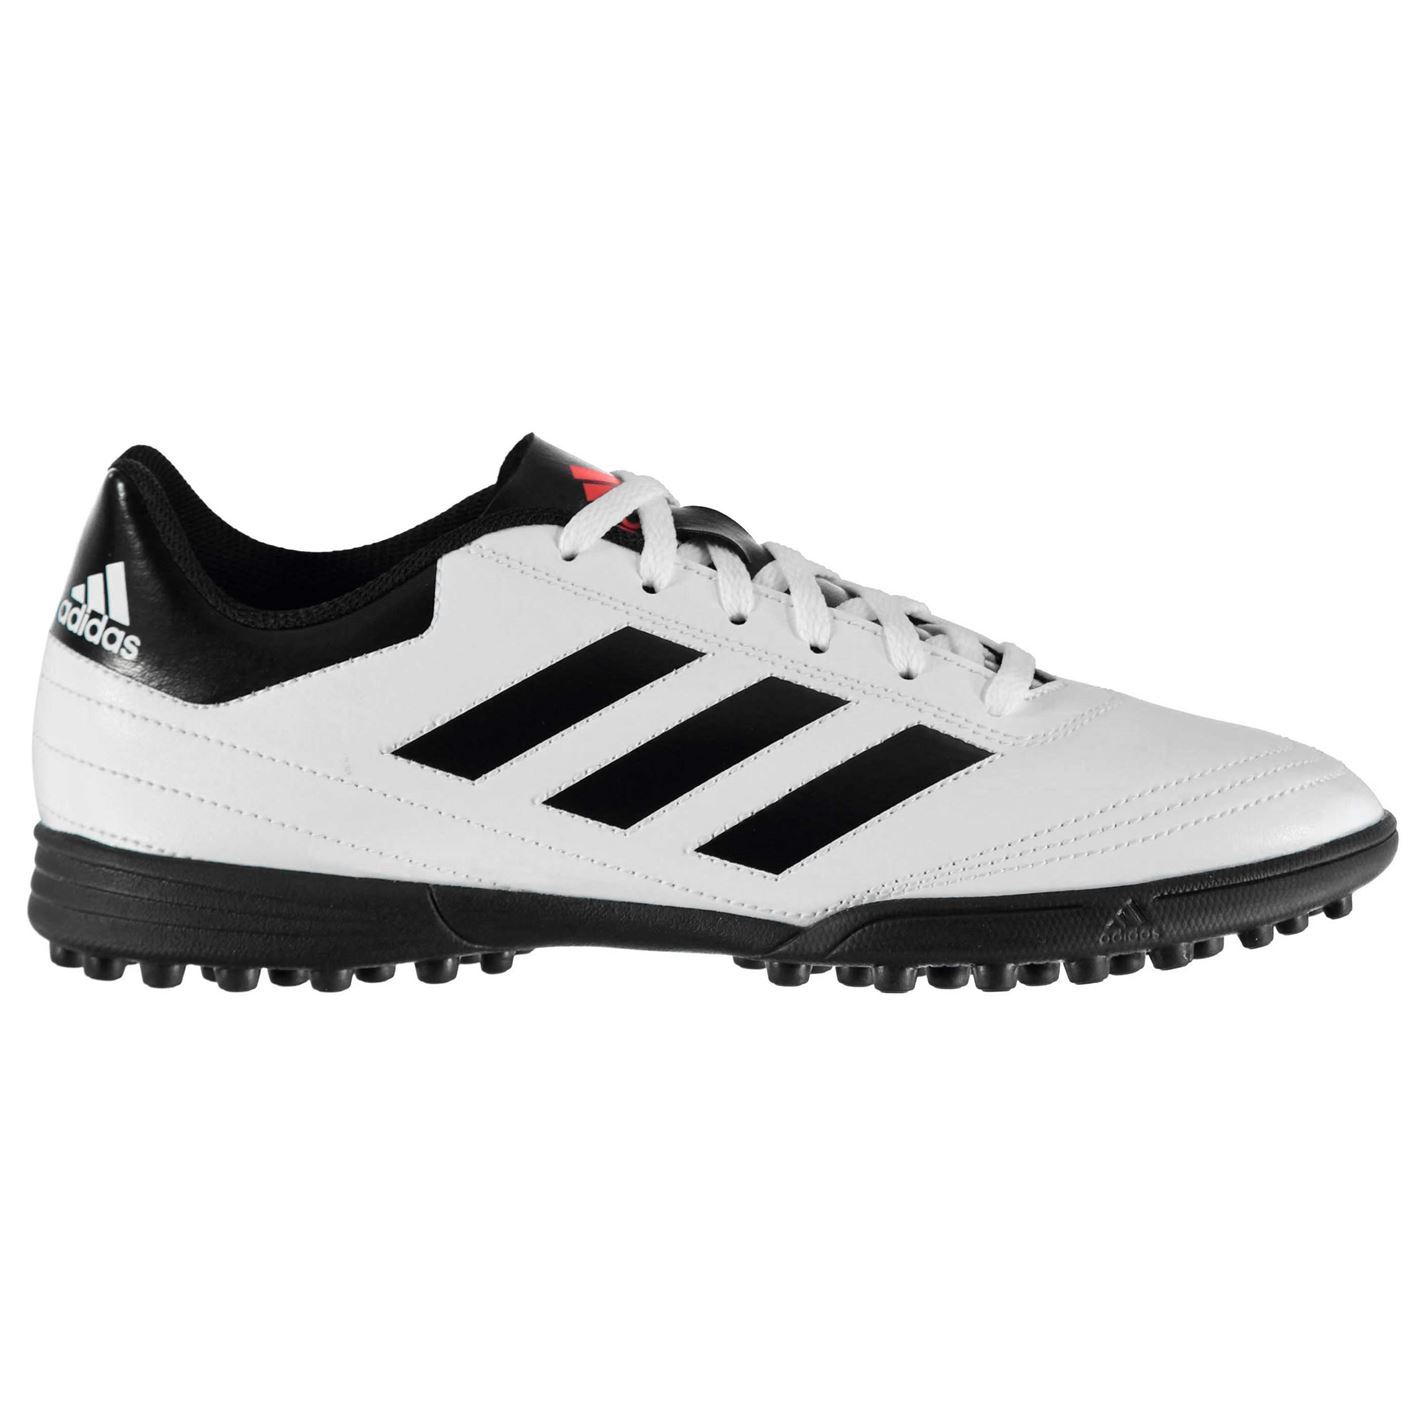 adidas Mens X 19.3 Astro Turf Trainers Football Boots Lace